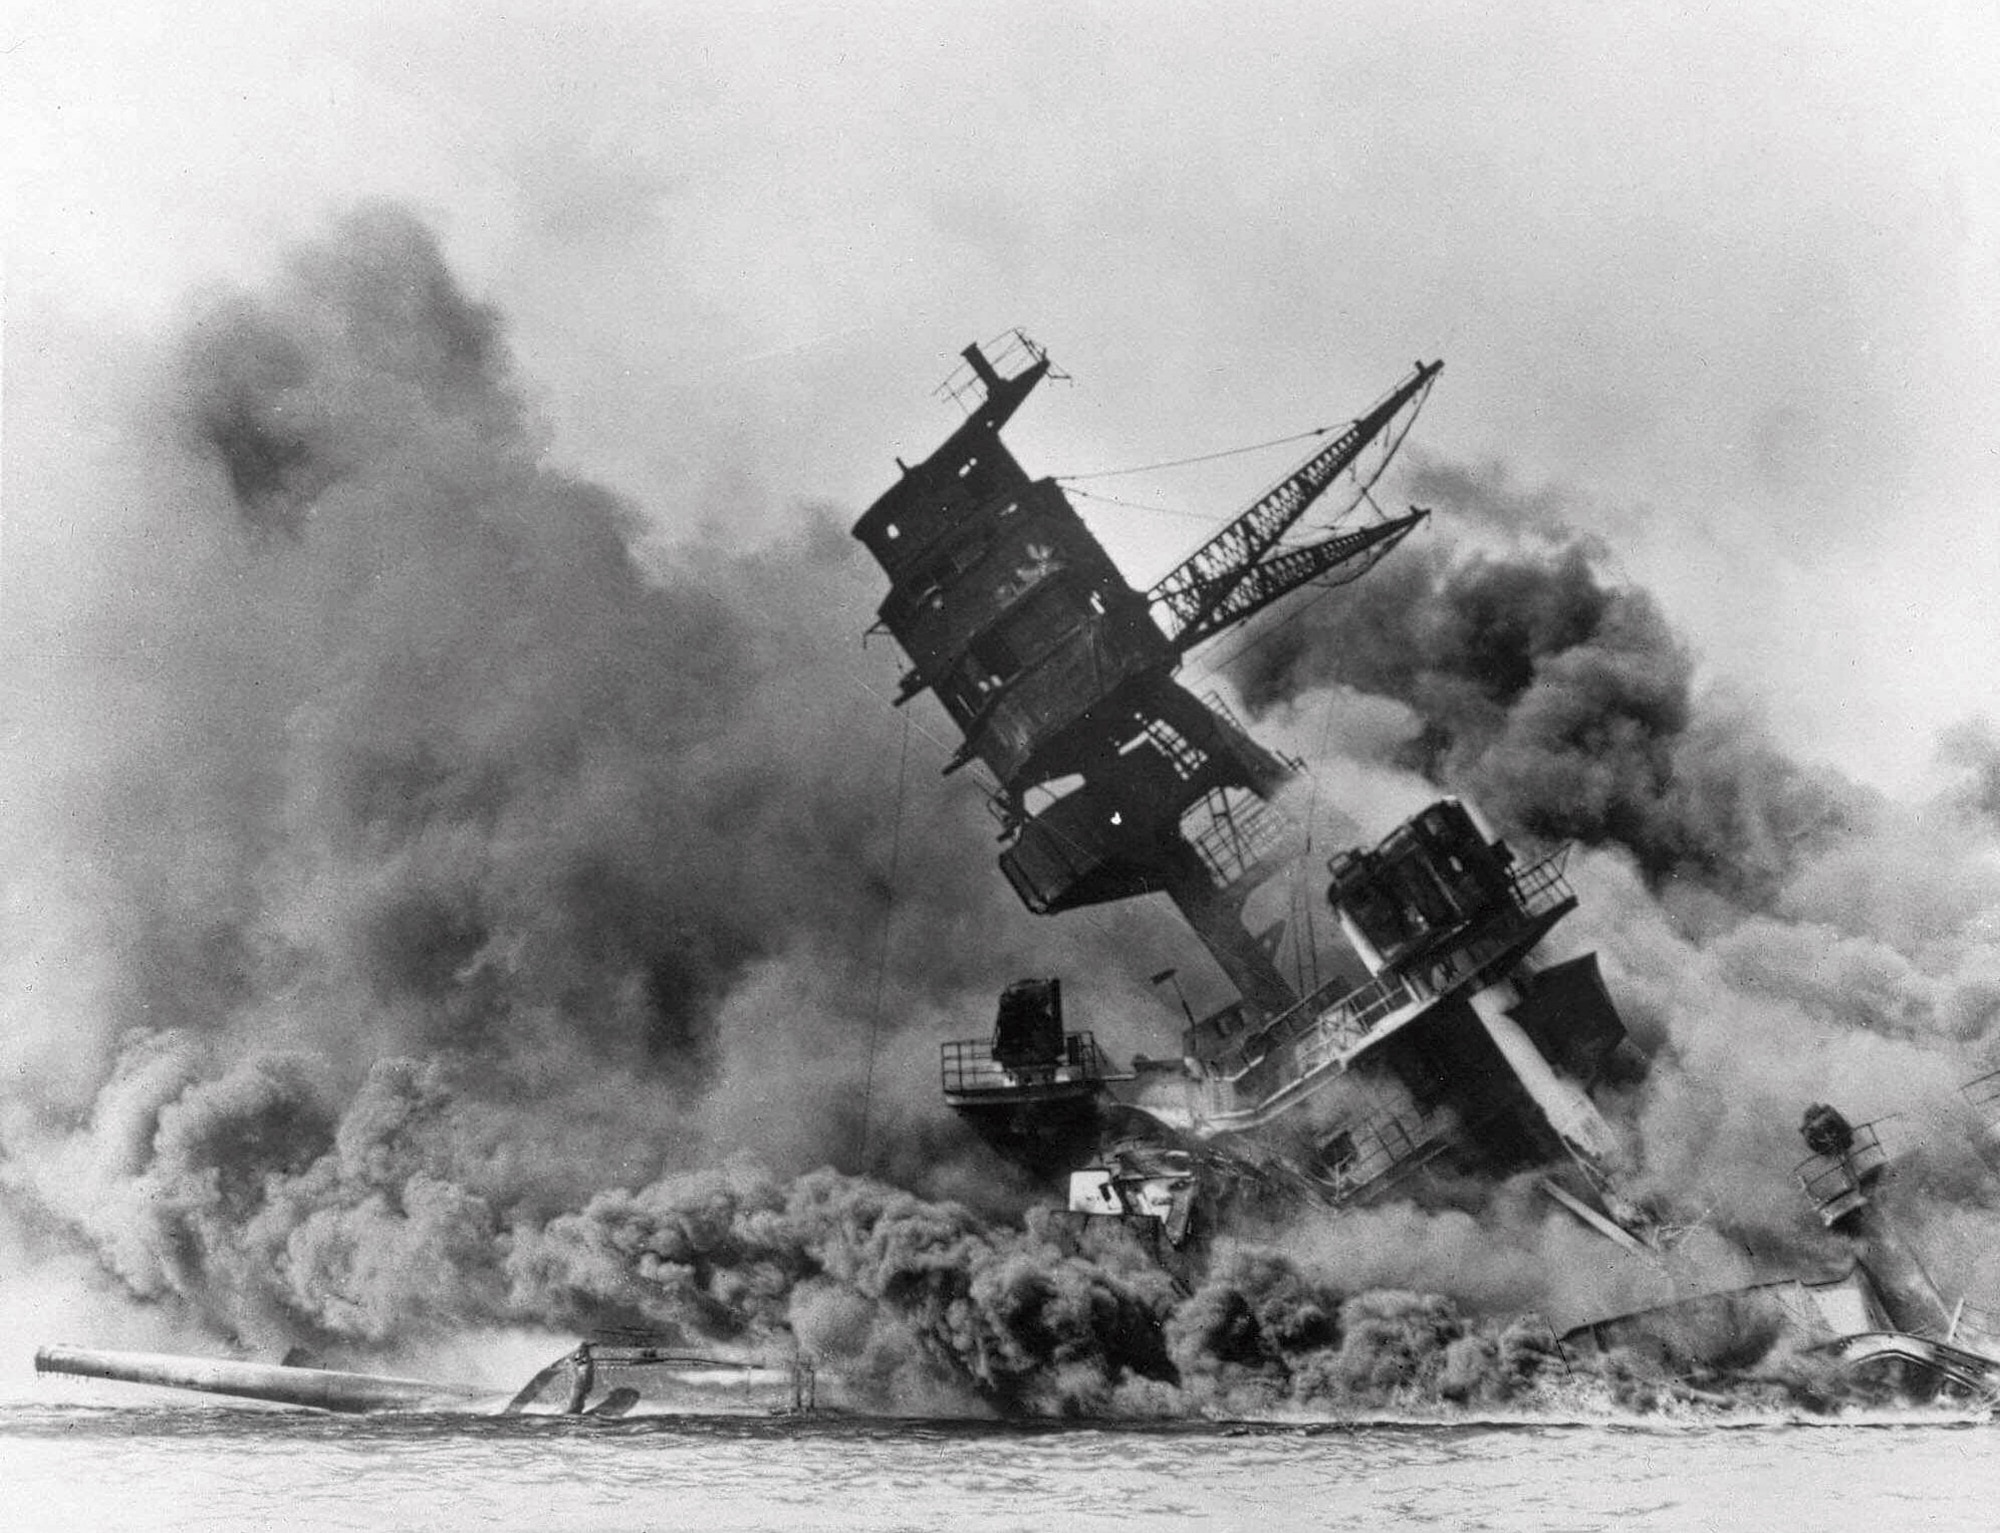 Smoke rises from the battleship USS Arizona as it sinks during the Japanese attack on Pearl Harbor, Hawaii.